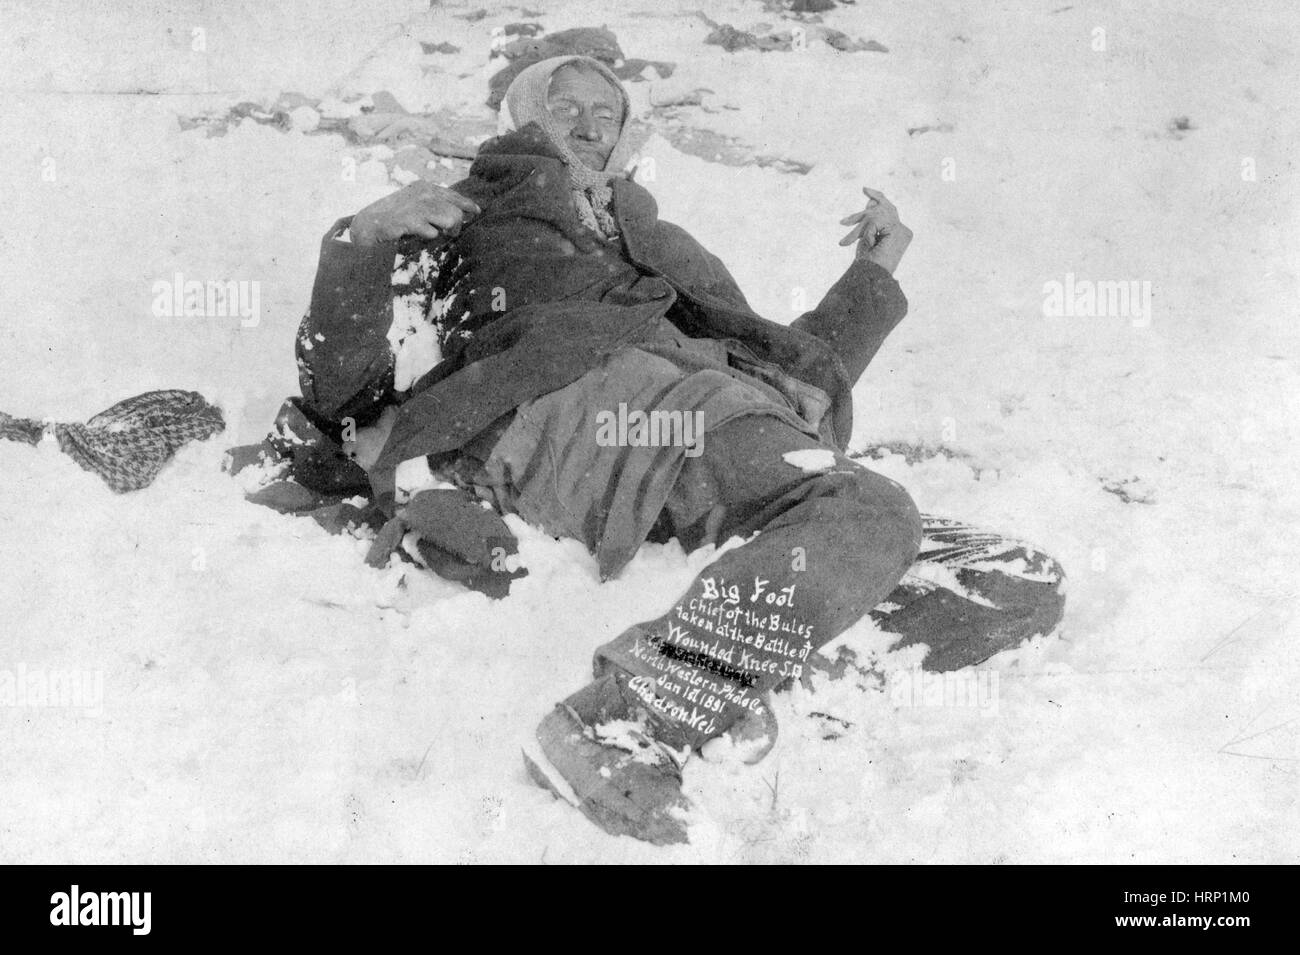 Spotted Elk's Body, Wounded Knee Massacre, 1890 Stock Photo